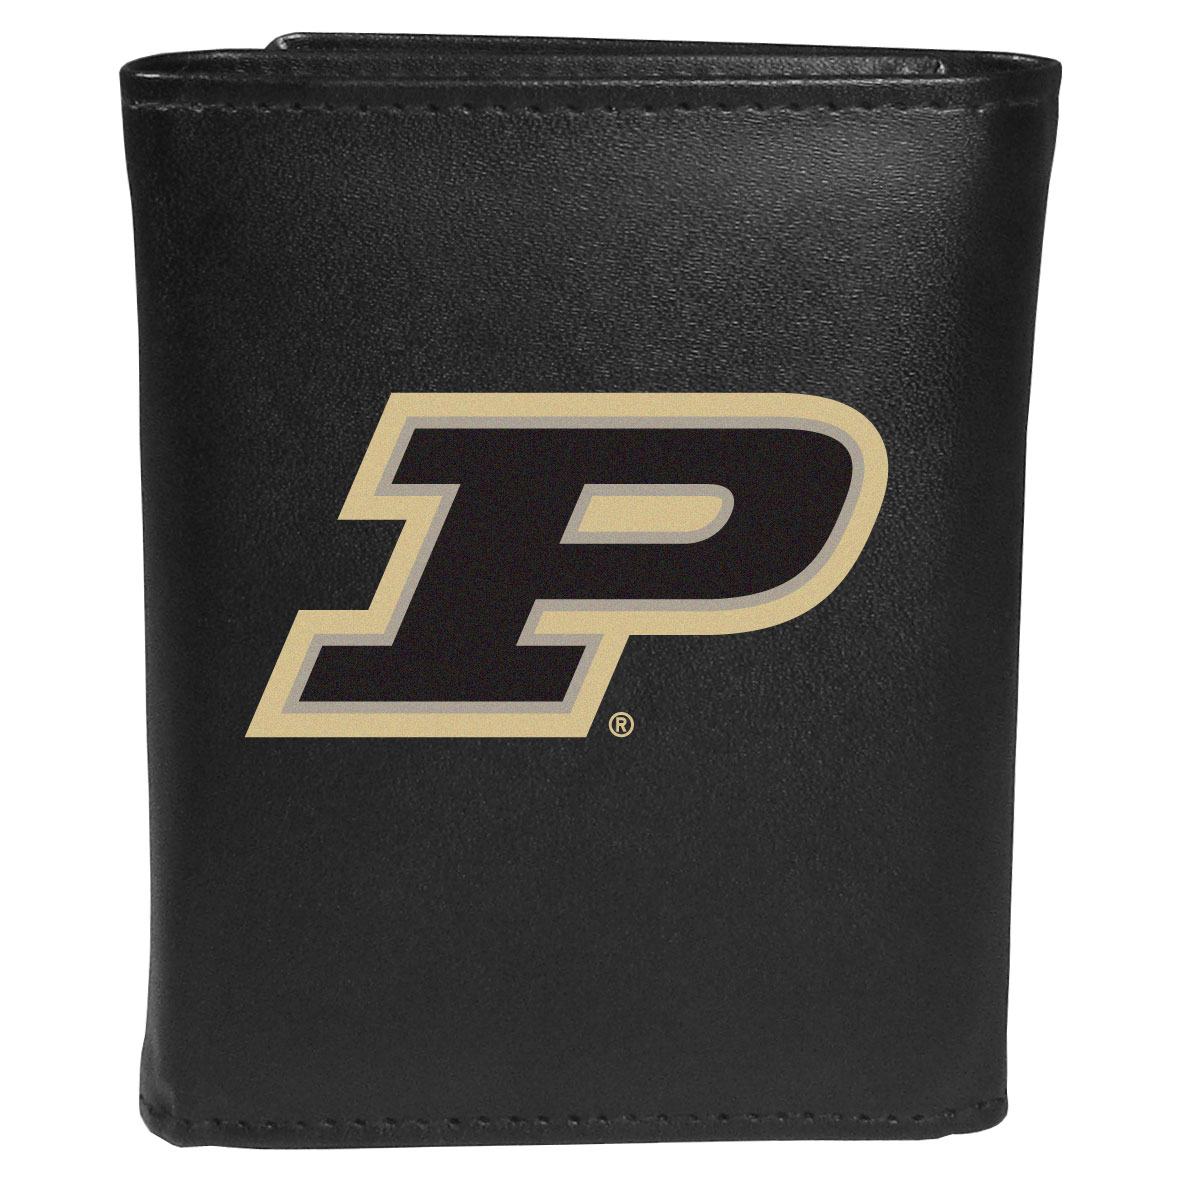 Purdue Boilermakers Leather Tri-fold Wallet, Large Logo - Our classic fine leather tri-fold wallet is meticulously crafted with genuine leather that will age beautifully so you will have a quality wallet for years to come. This is fan apparel at its finest. The wallet is packed with organizational  features; lots of credit card slots, large billfold pocket, and a window ID slot. The front of the wallet features an extra large Purdue Boilermakers printed logo.